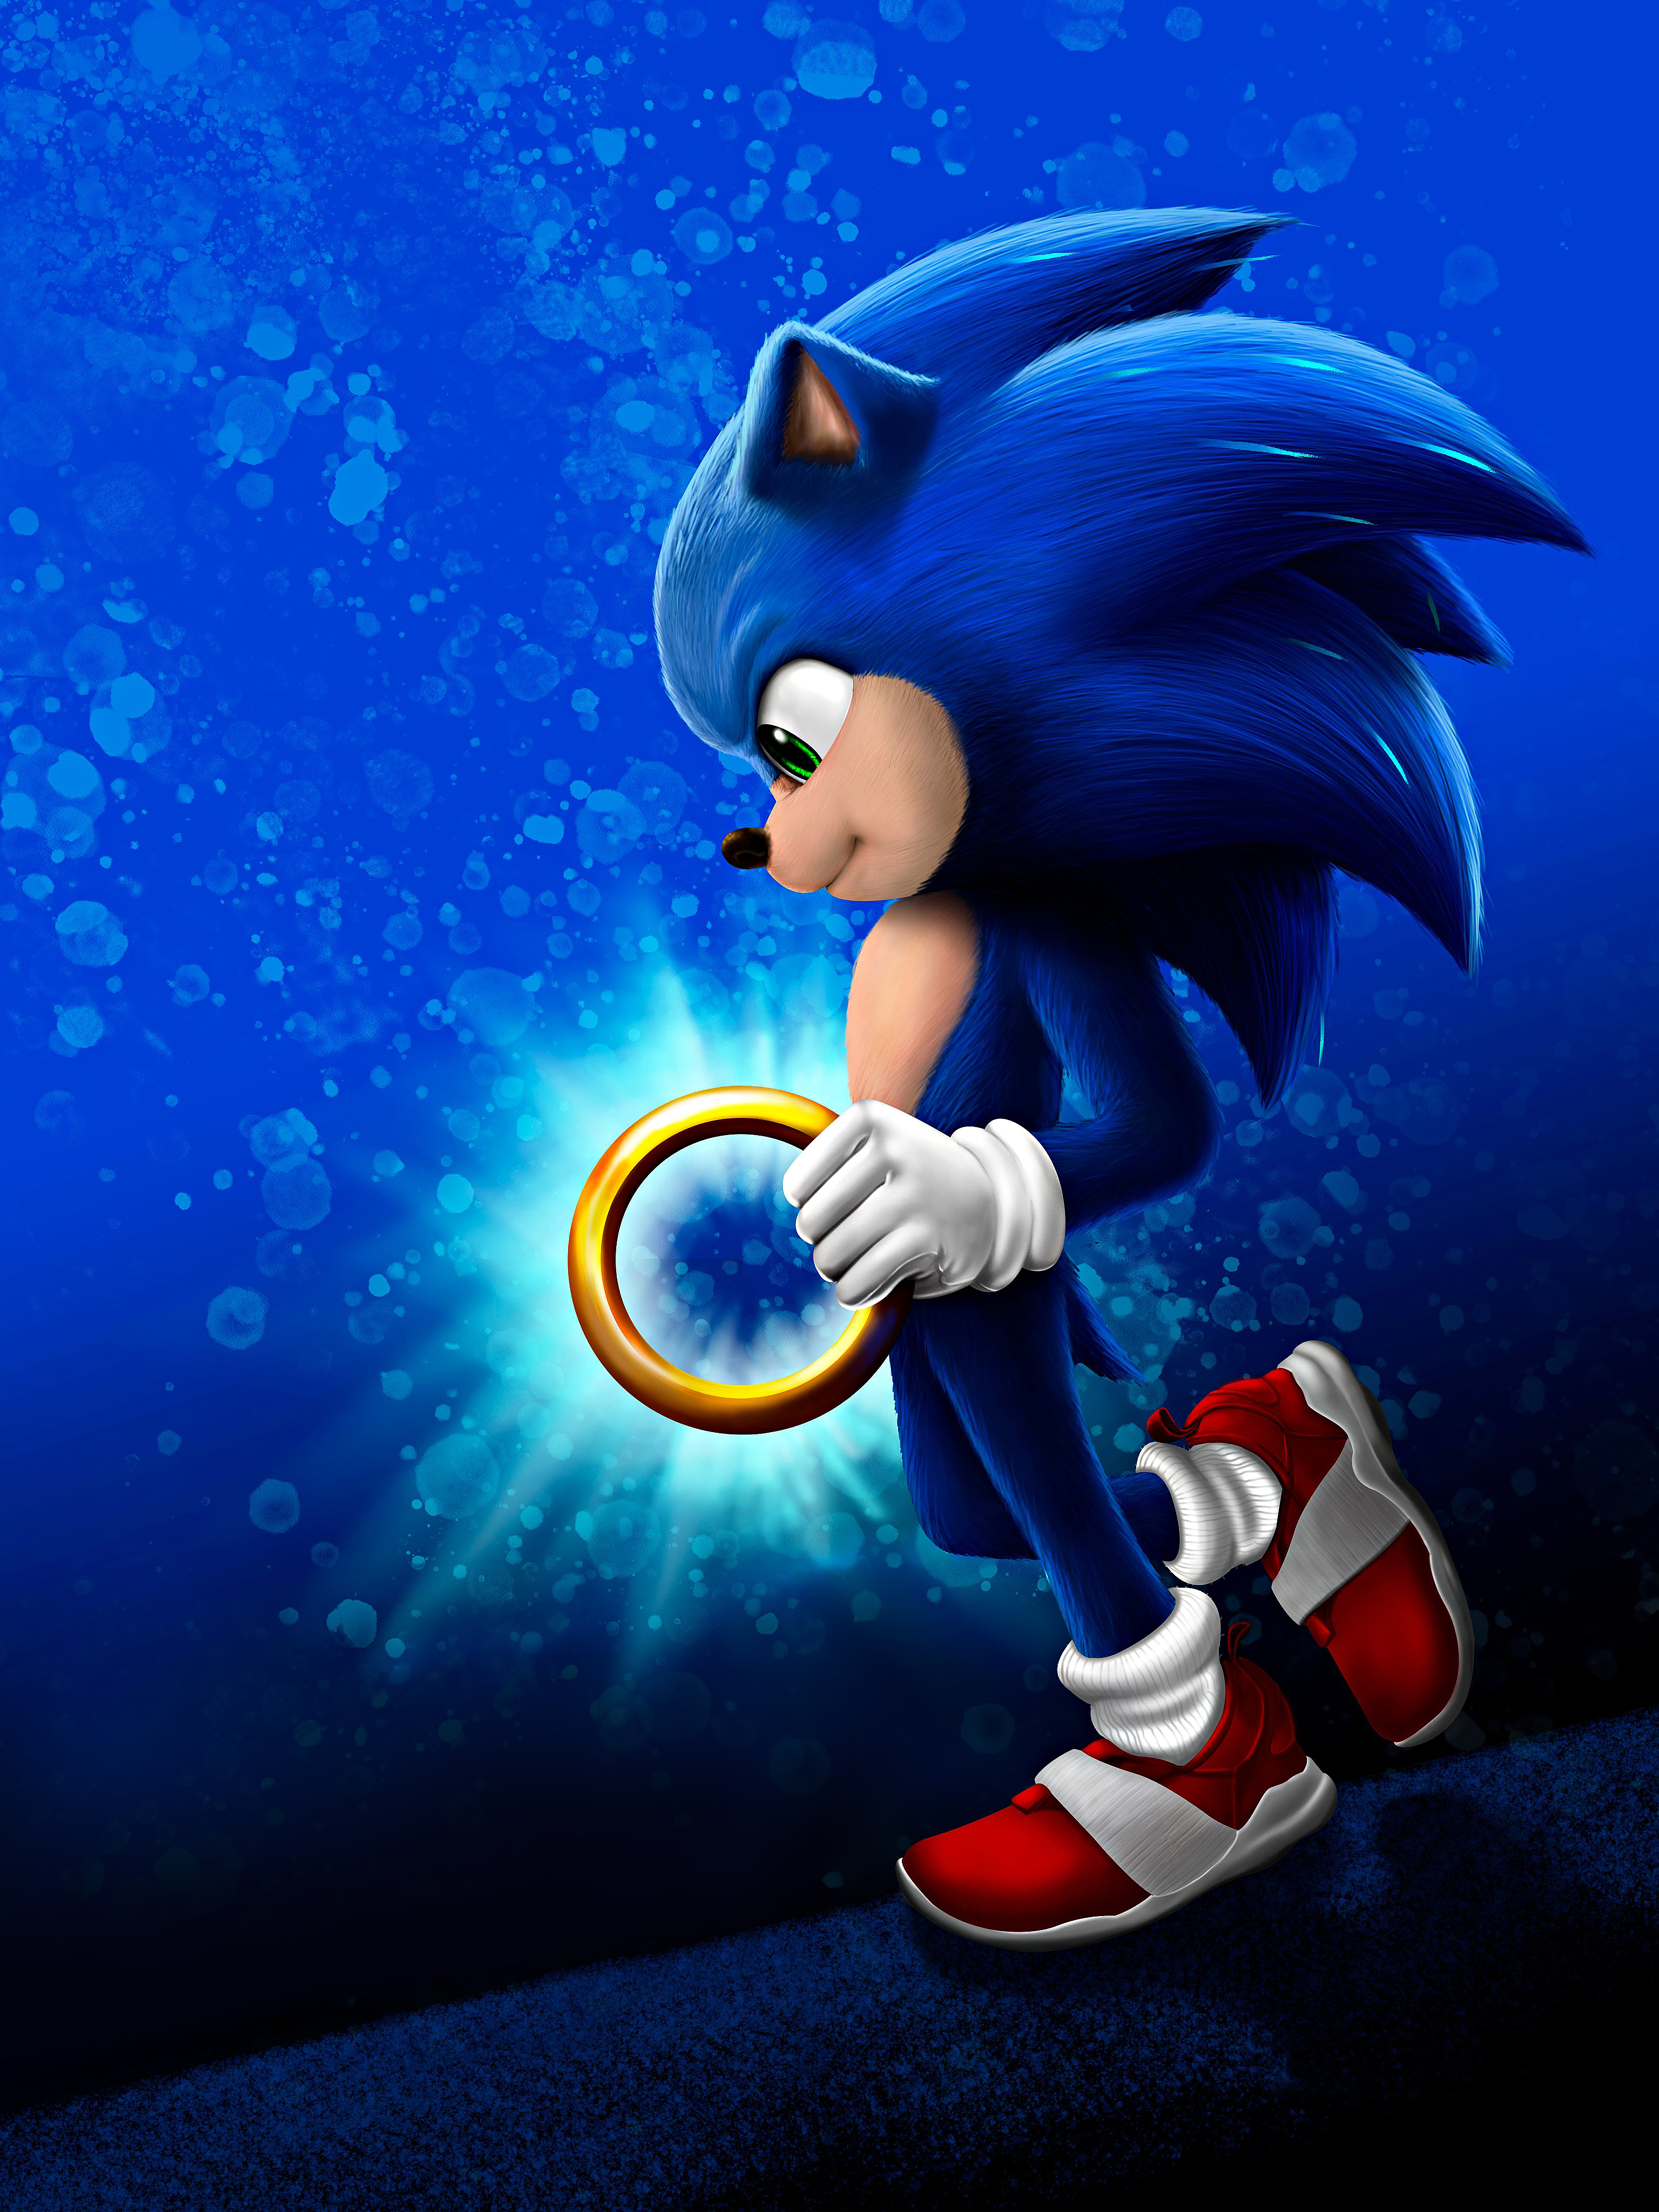 Sonic The Hedgehog Poster 2973219 Hd Wallpaper Backgrounds Download